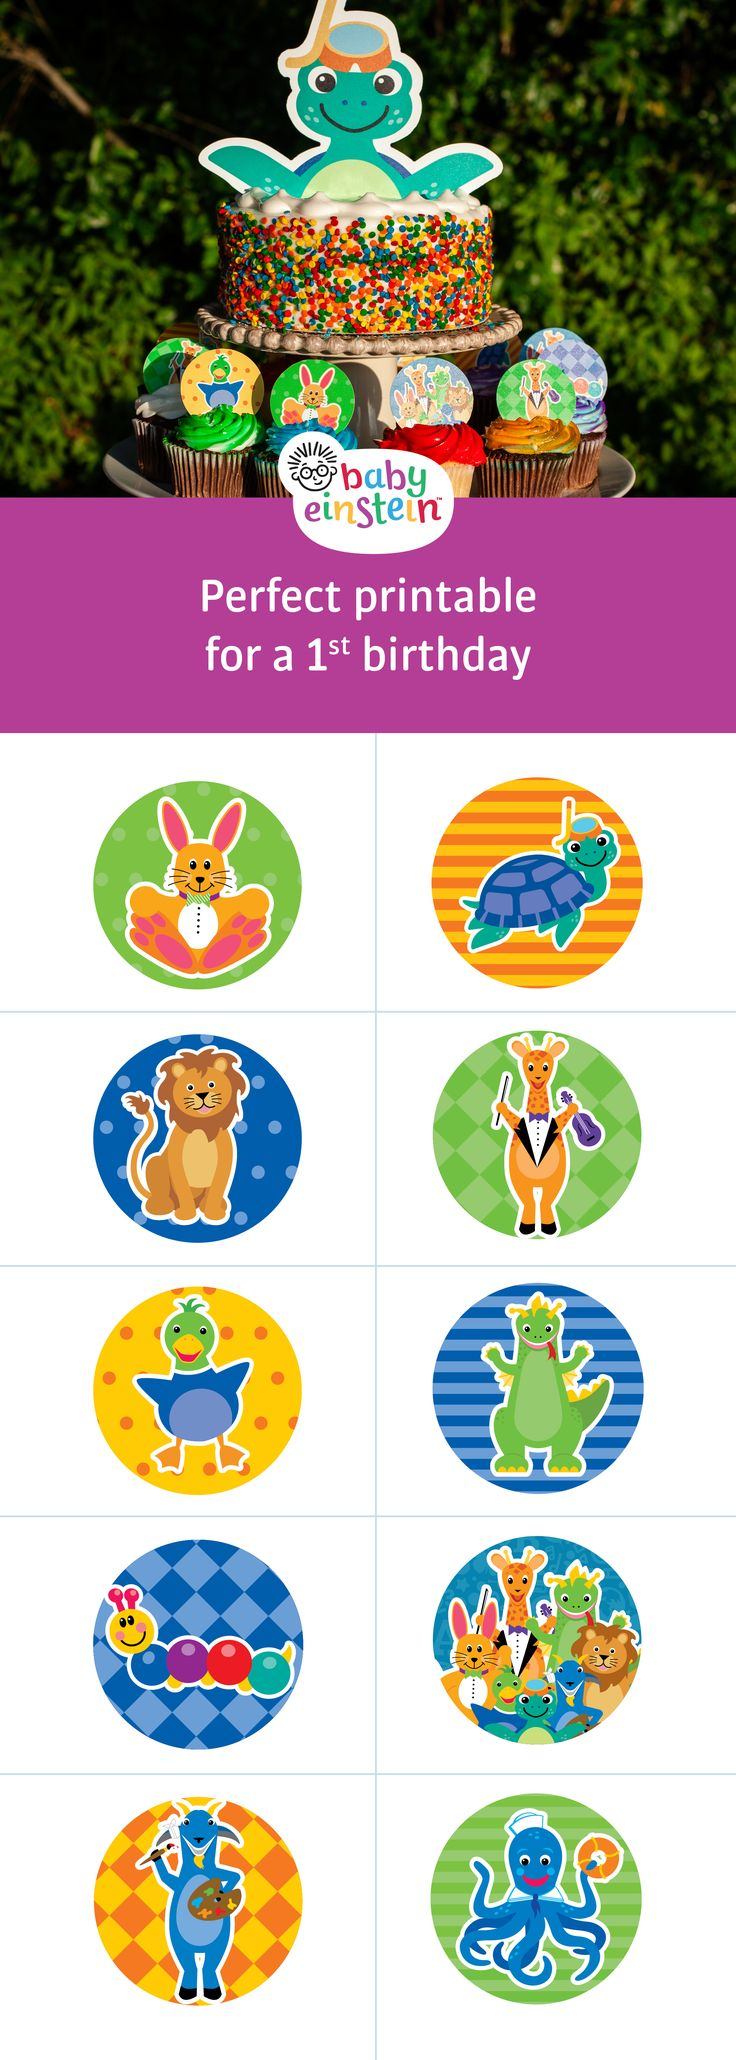 Adorable Baby Einstein cupcake toppers for your little one's birthday party. Get printables now!